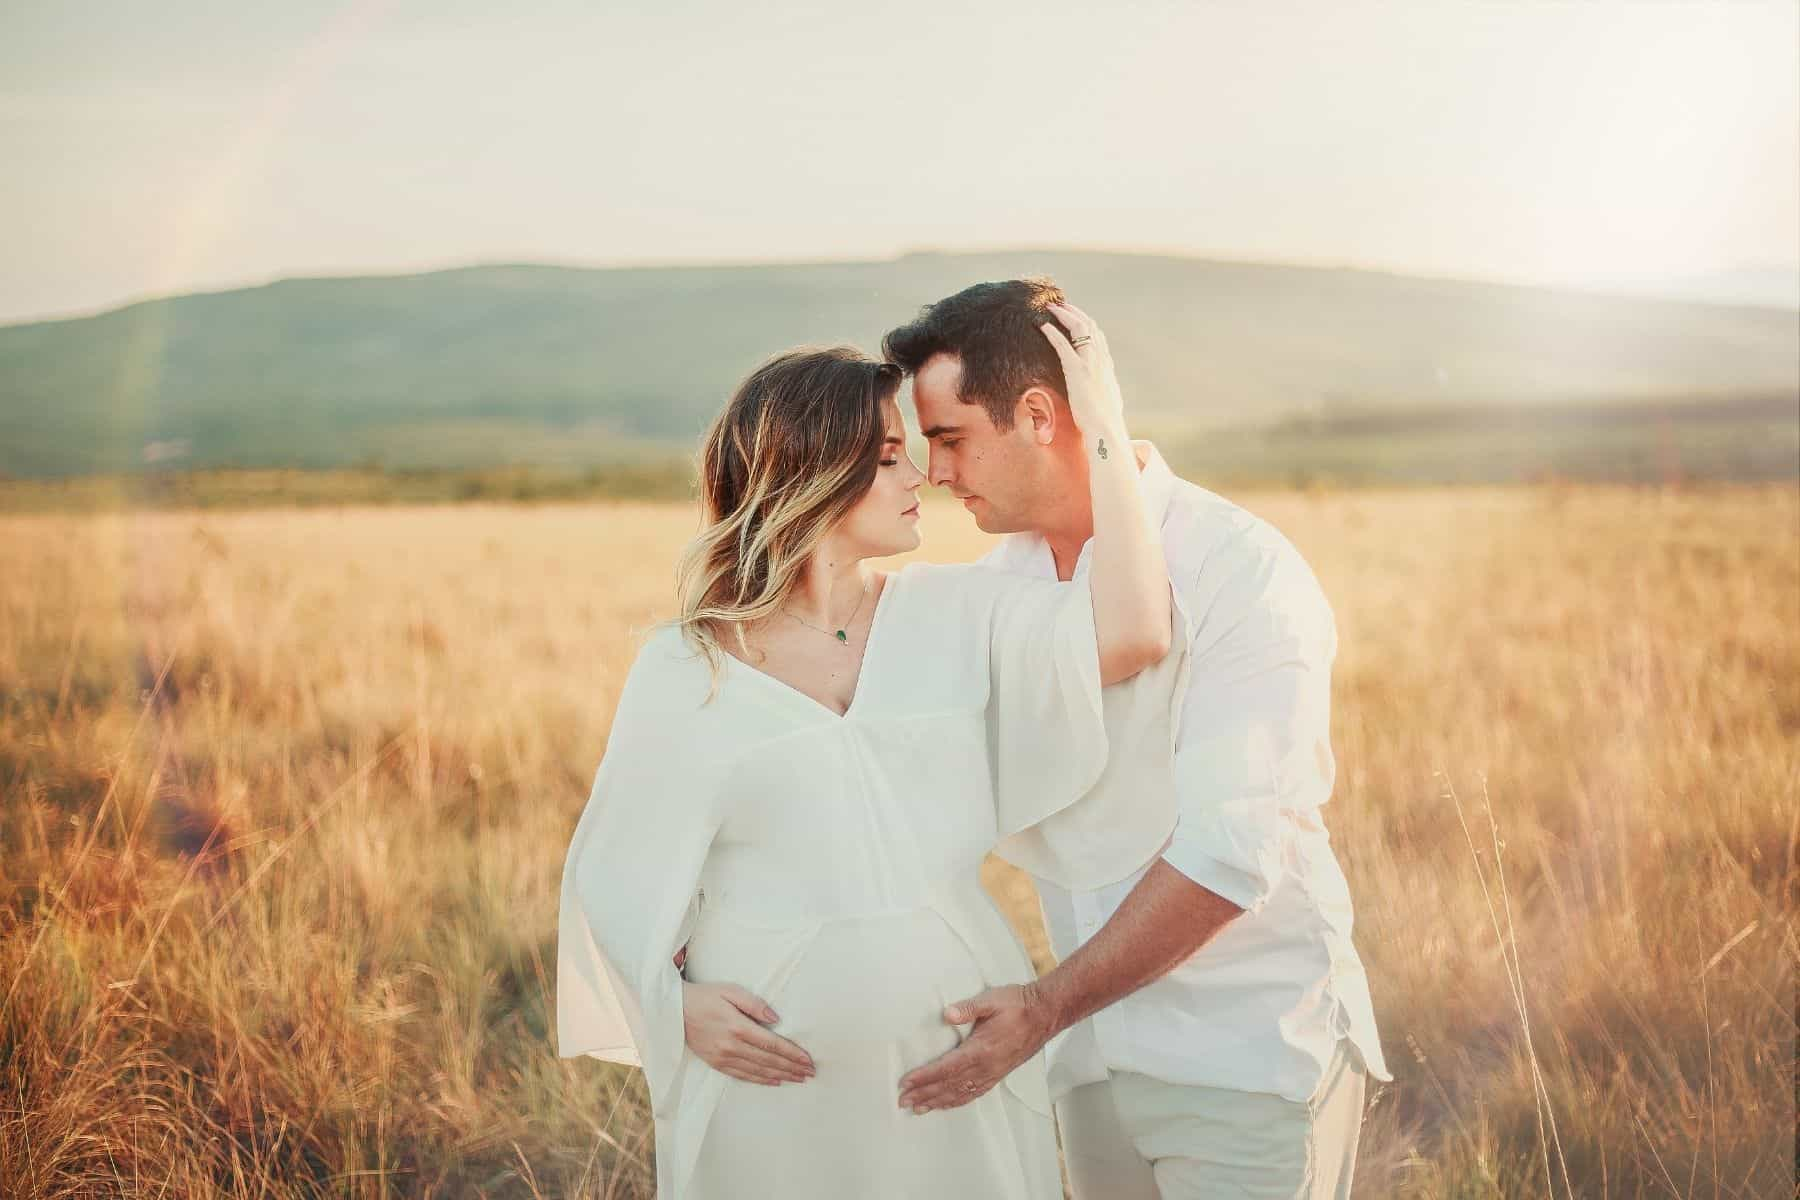 maternity photos - with dad